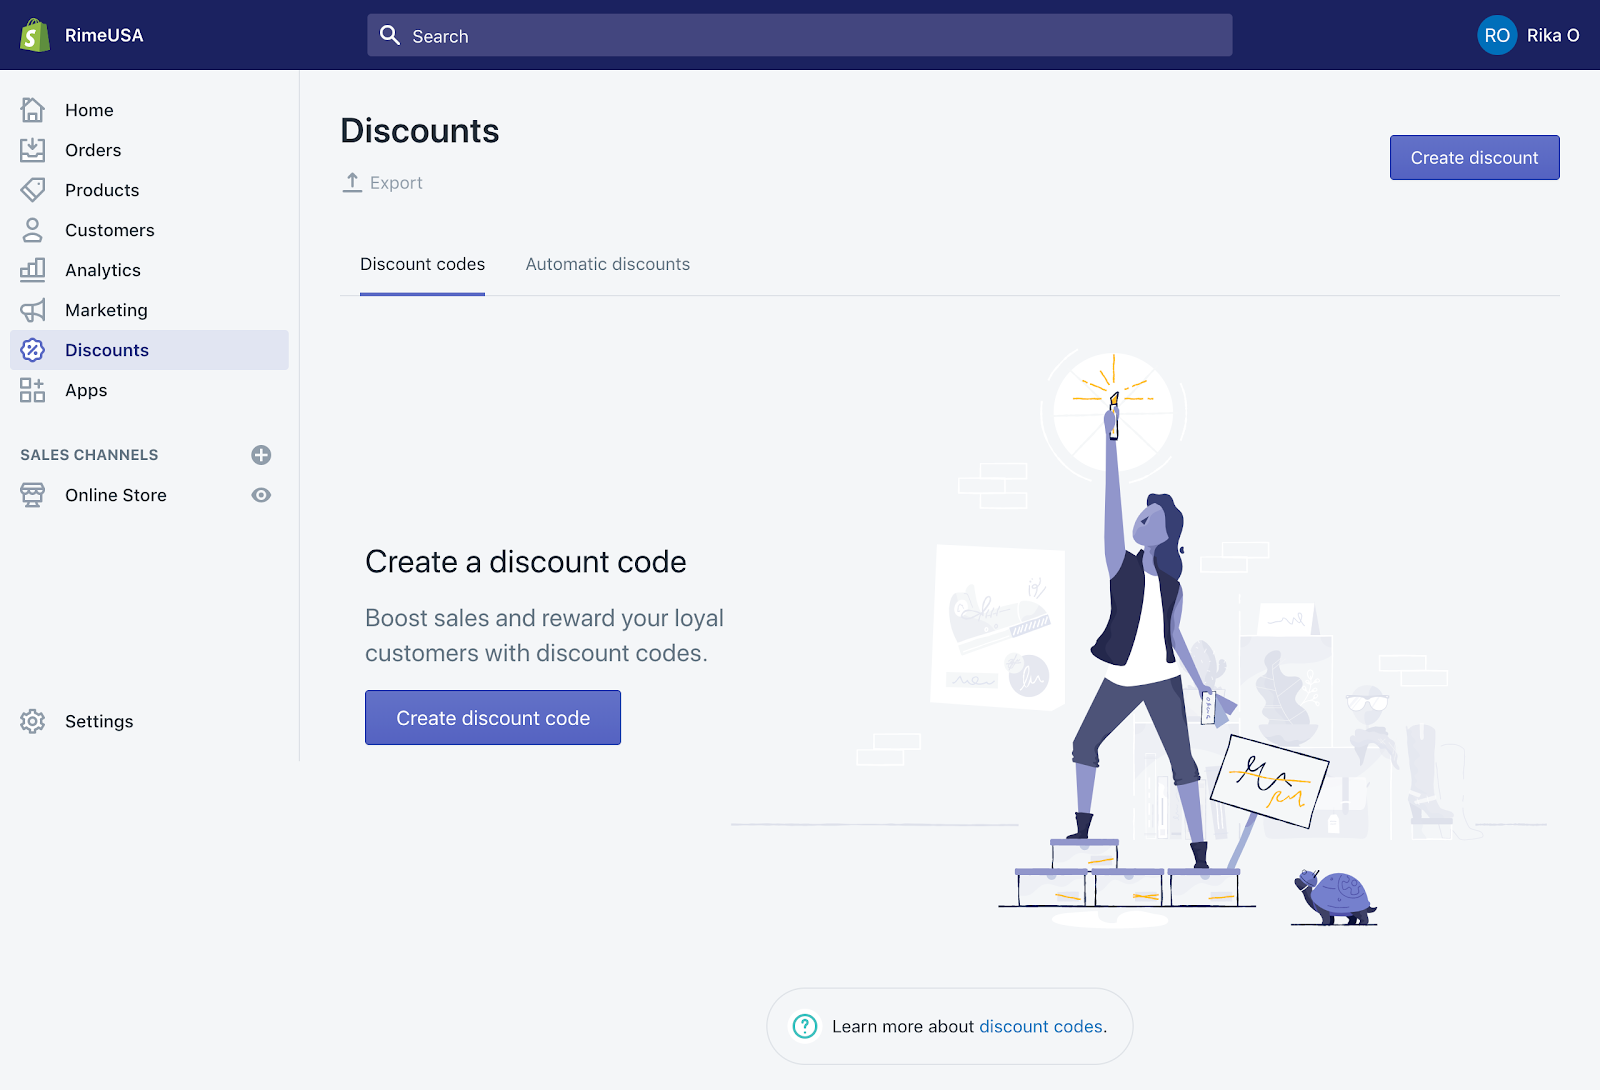 How to Create Discounts in Shopify